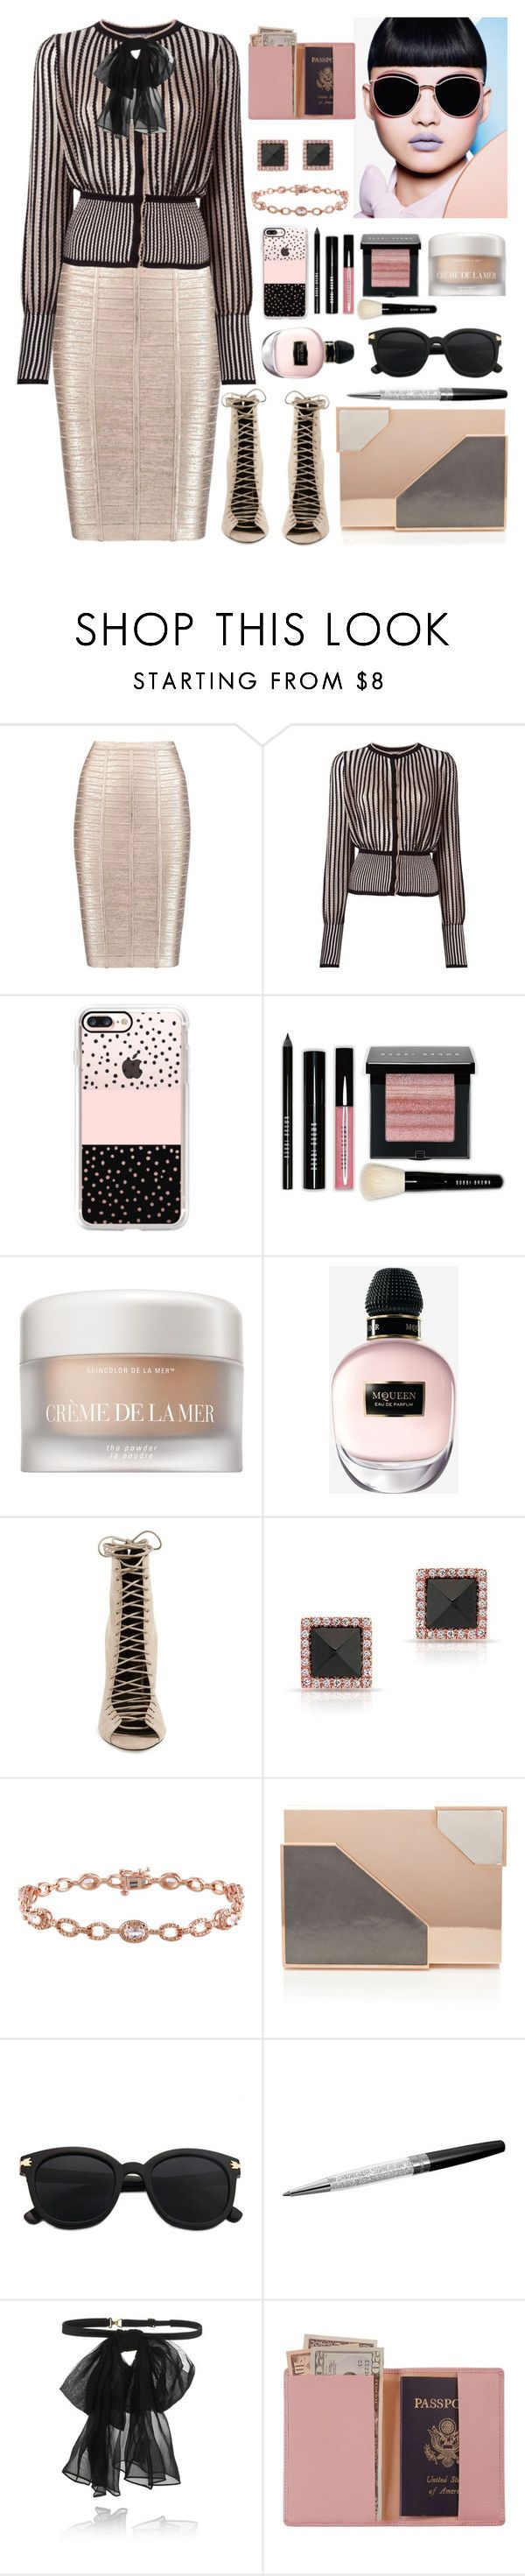 """251. Rose Gold Glow"" by milva-bg ❤ liked on Polyvore featuring Hervé Léger, Alexander McQueen, Casetify, Bobbi Brown Cosmetics, La Mer, Kendall + Kylie, Anne Sisteron, Miadora, Lee Savage and Swarovski"